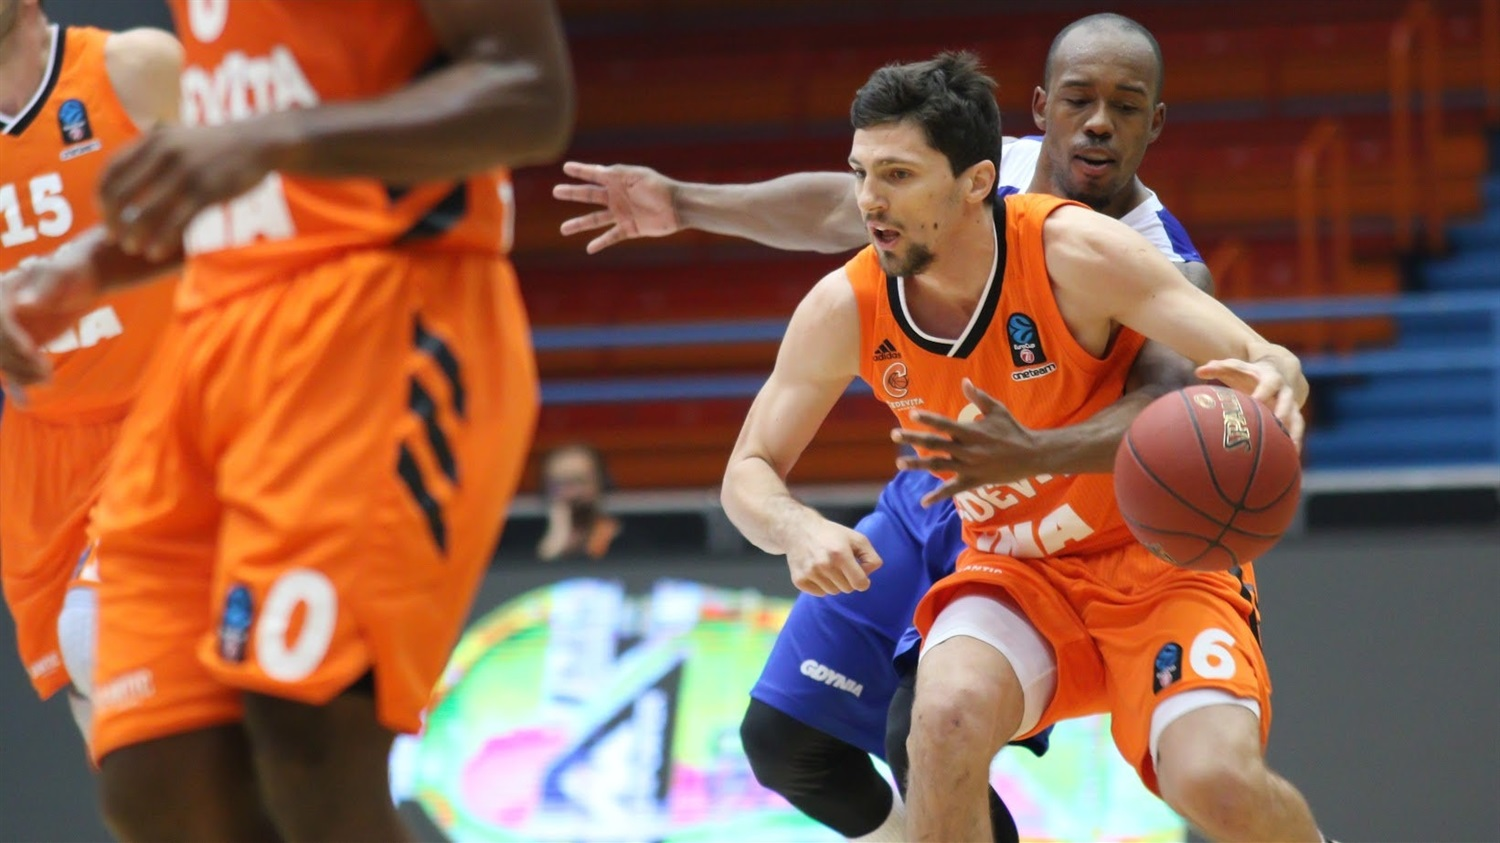 Toni Katic - Cedevita Zagreb (photo Cedevita) - EC18